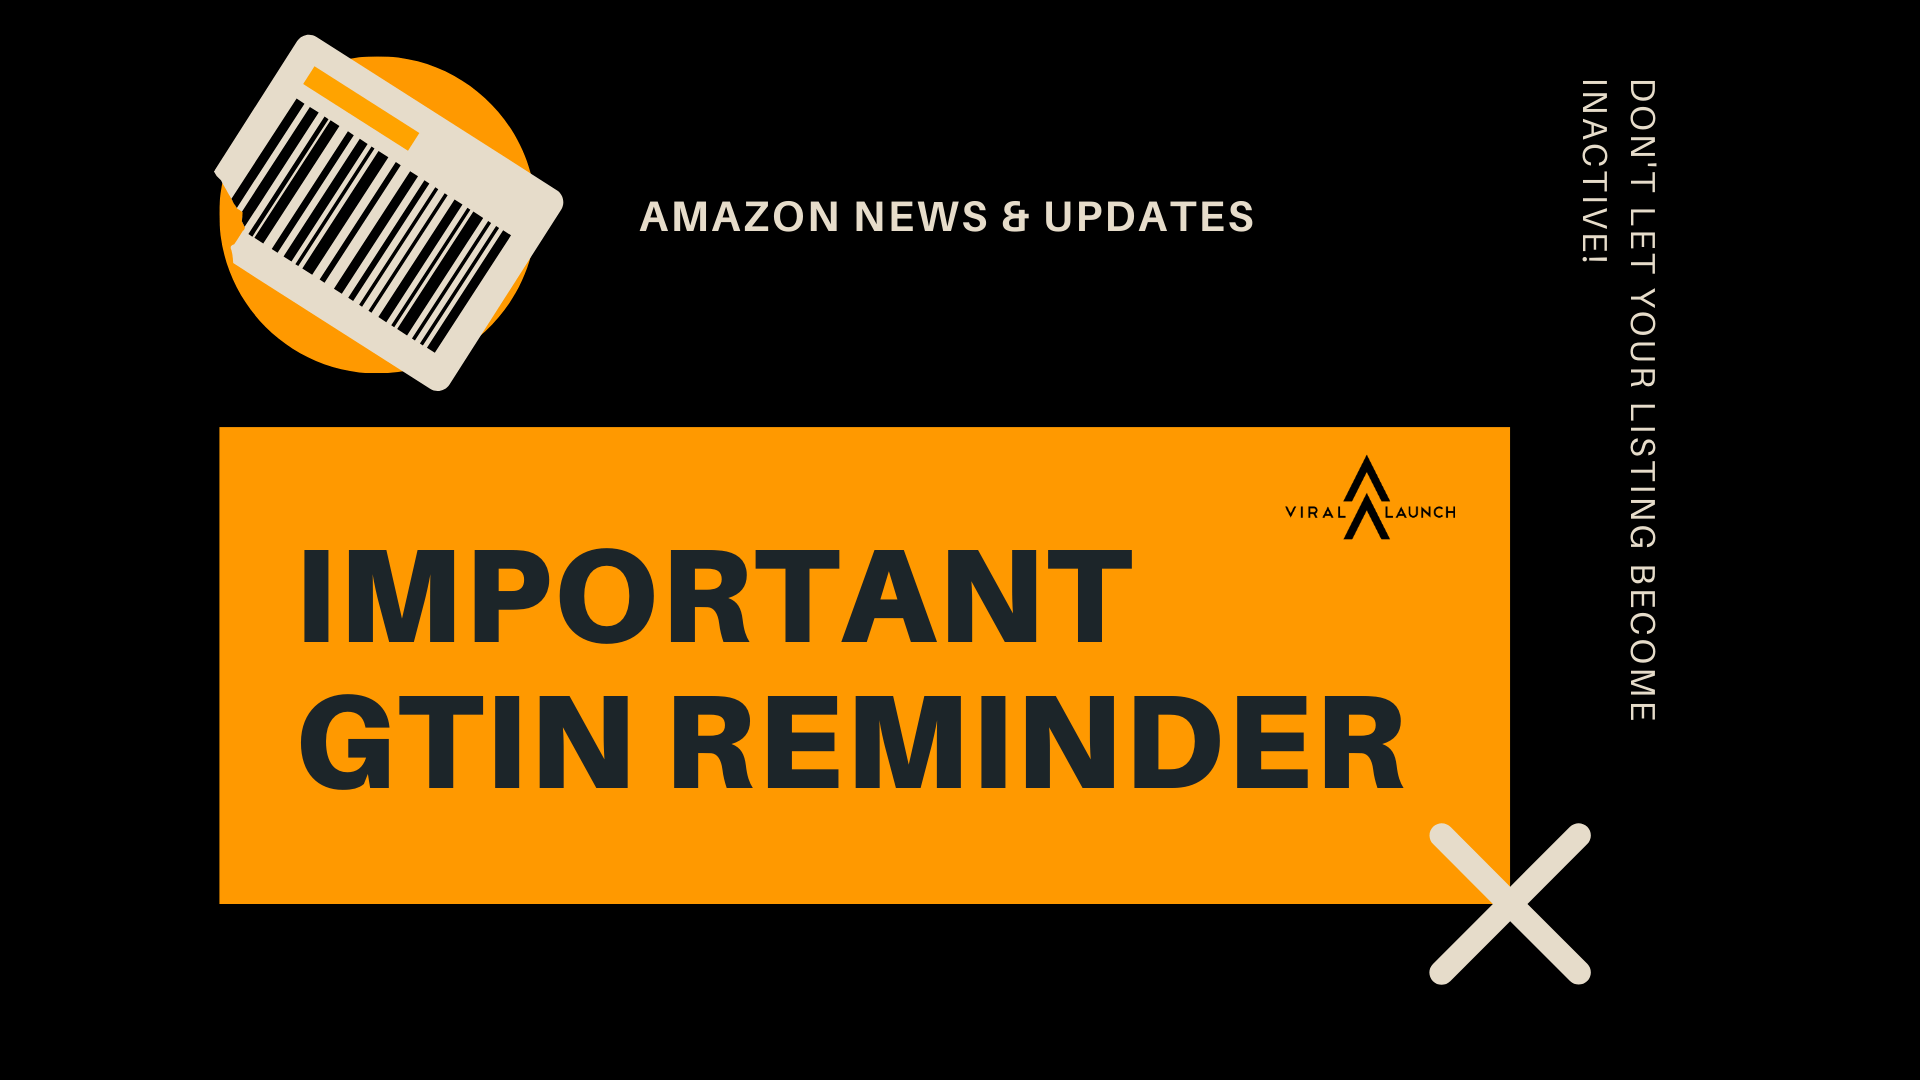 IMPORTANT GTIN REMINDER WITH BARCODE AND VIRAL LAUNCH LOGO